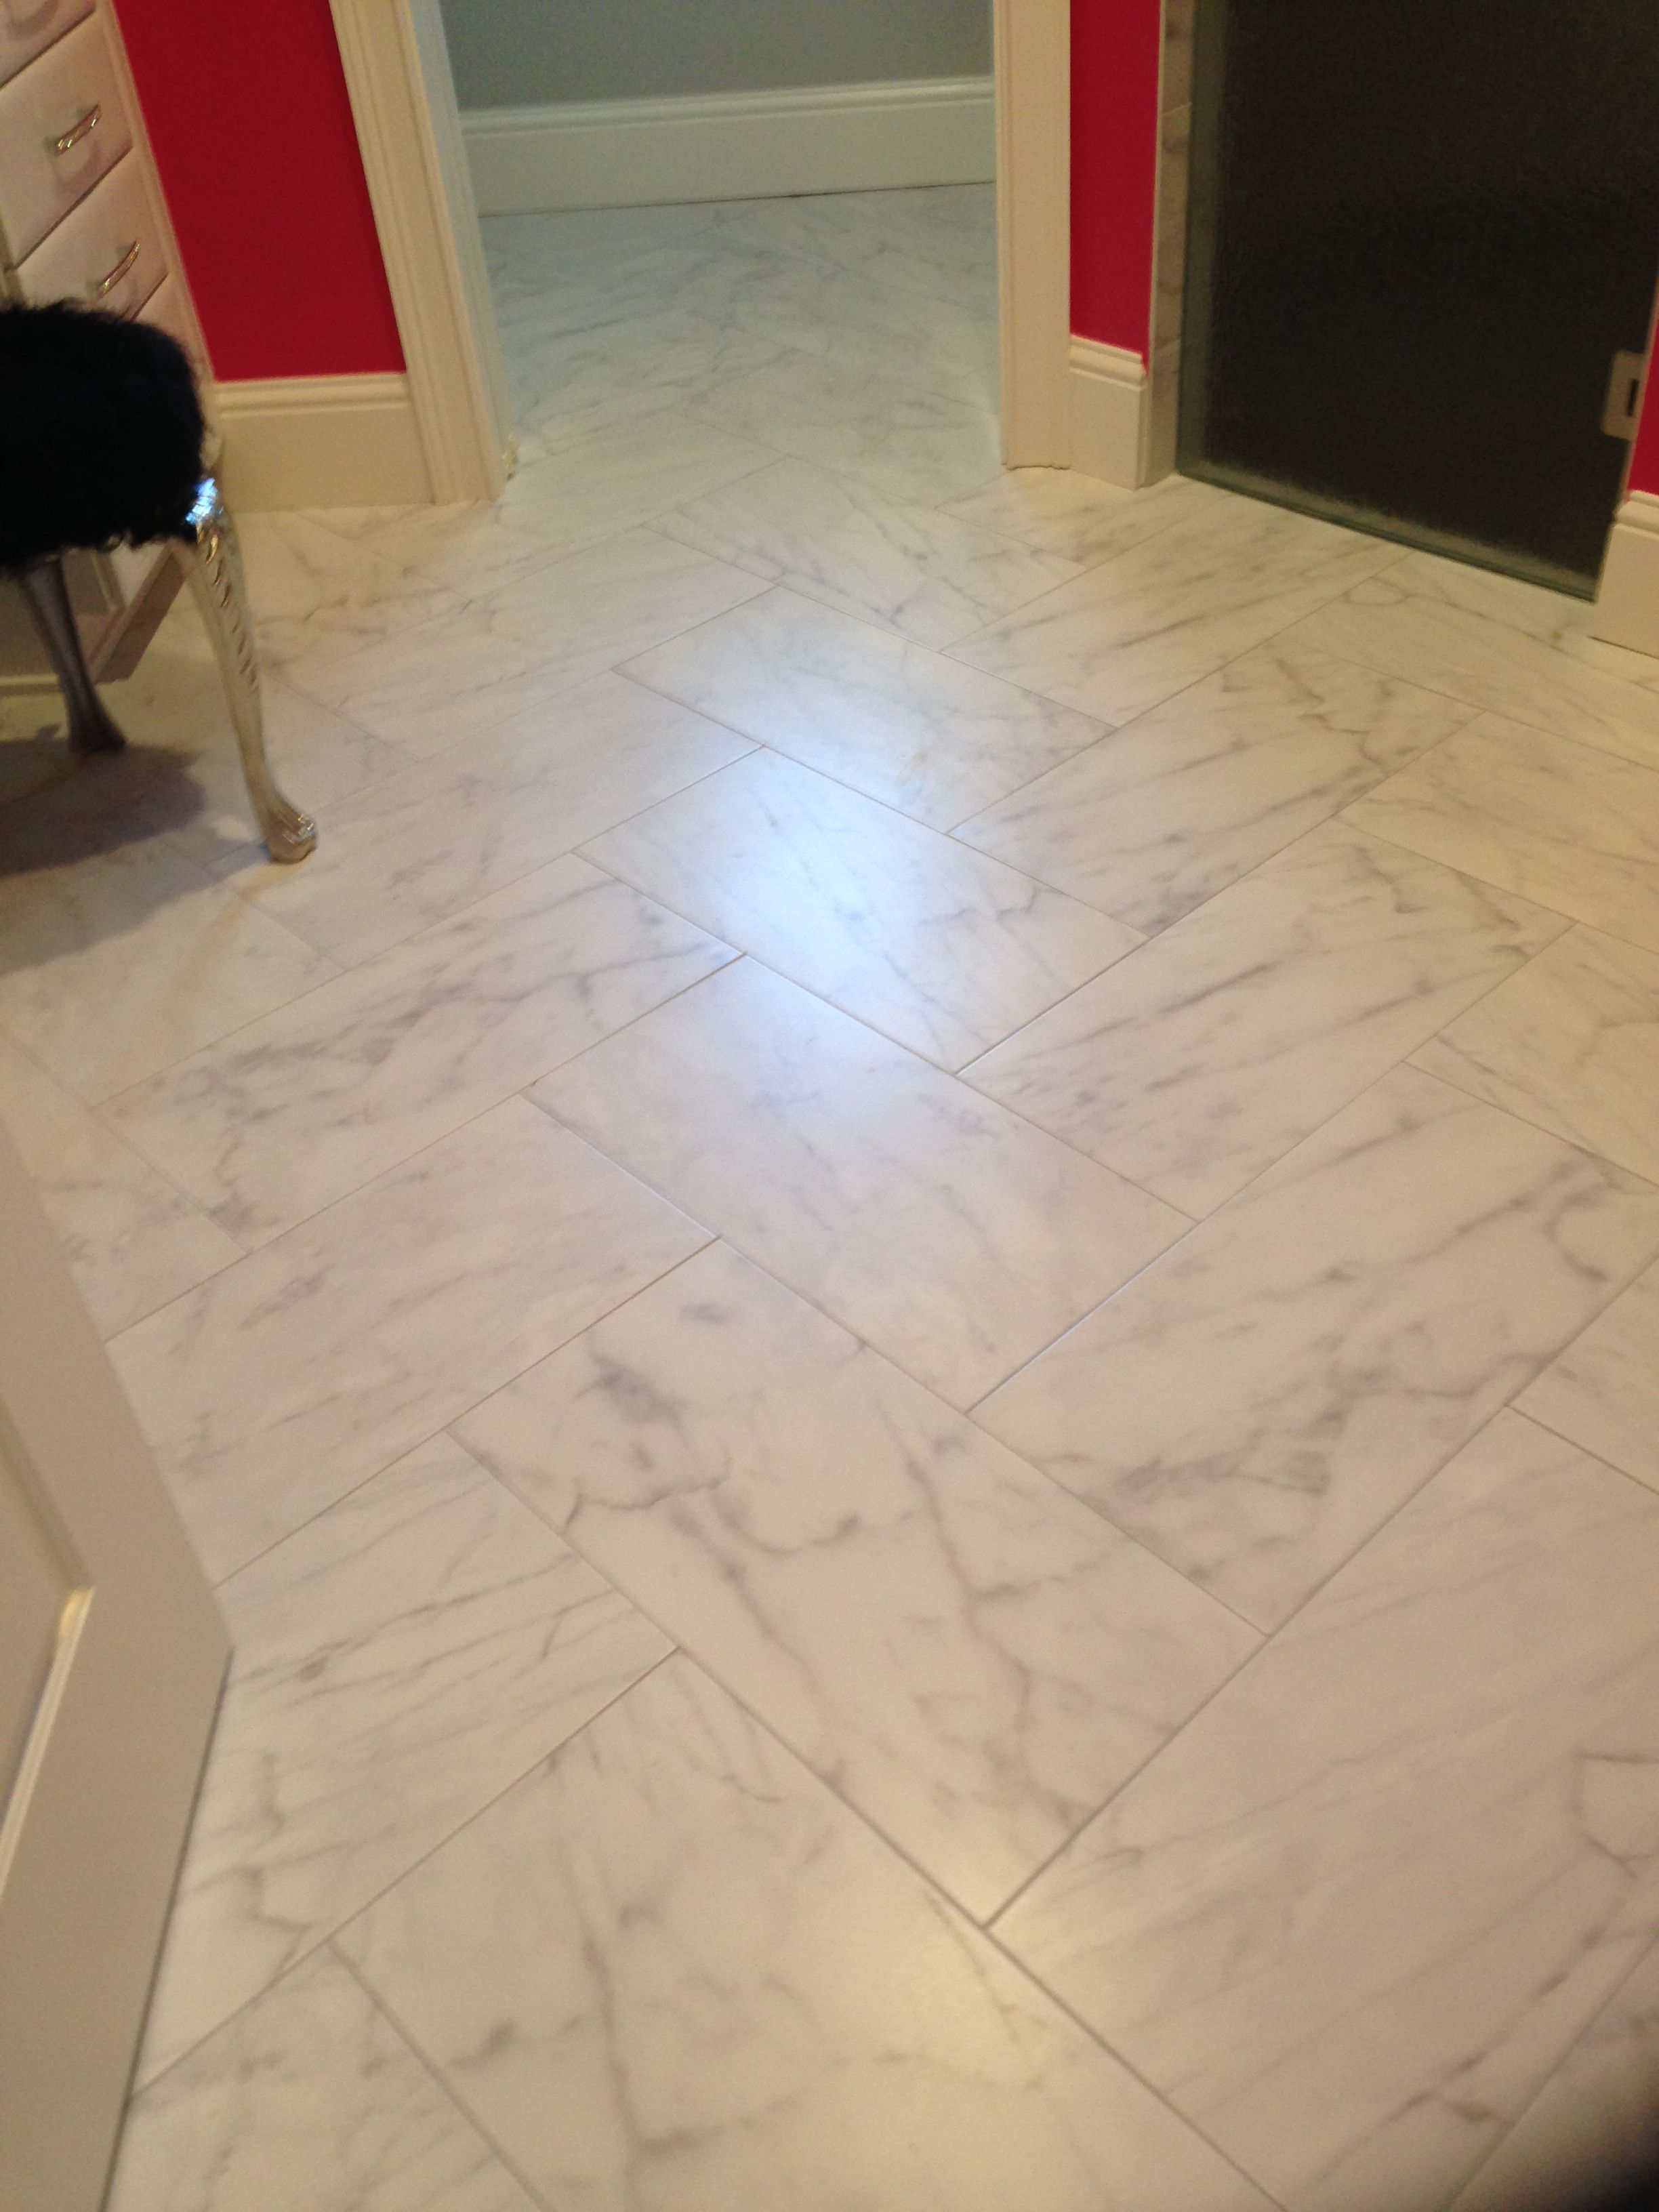 12 X 24 Carrara Look Porcelain Tile In Herringbone Pattern Patterned Floor Tiles Tile Floor Herringbone Tile Floors